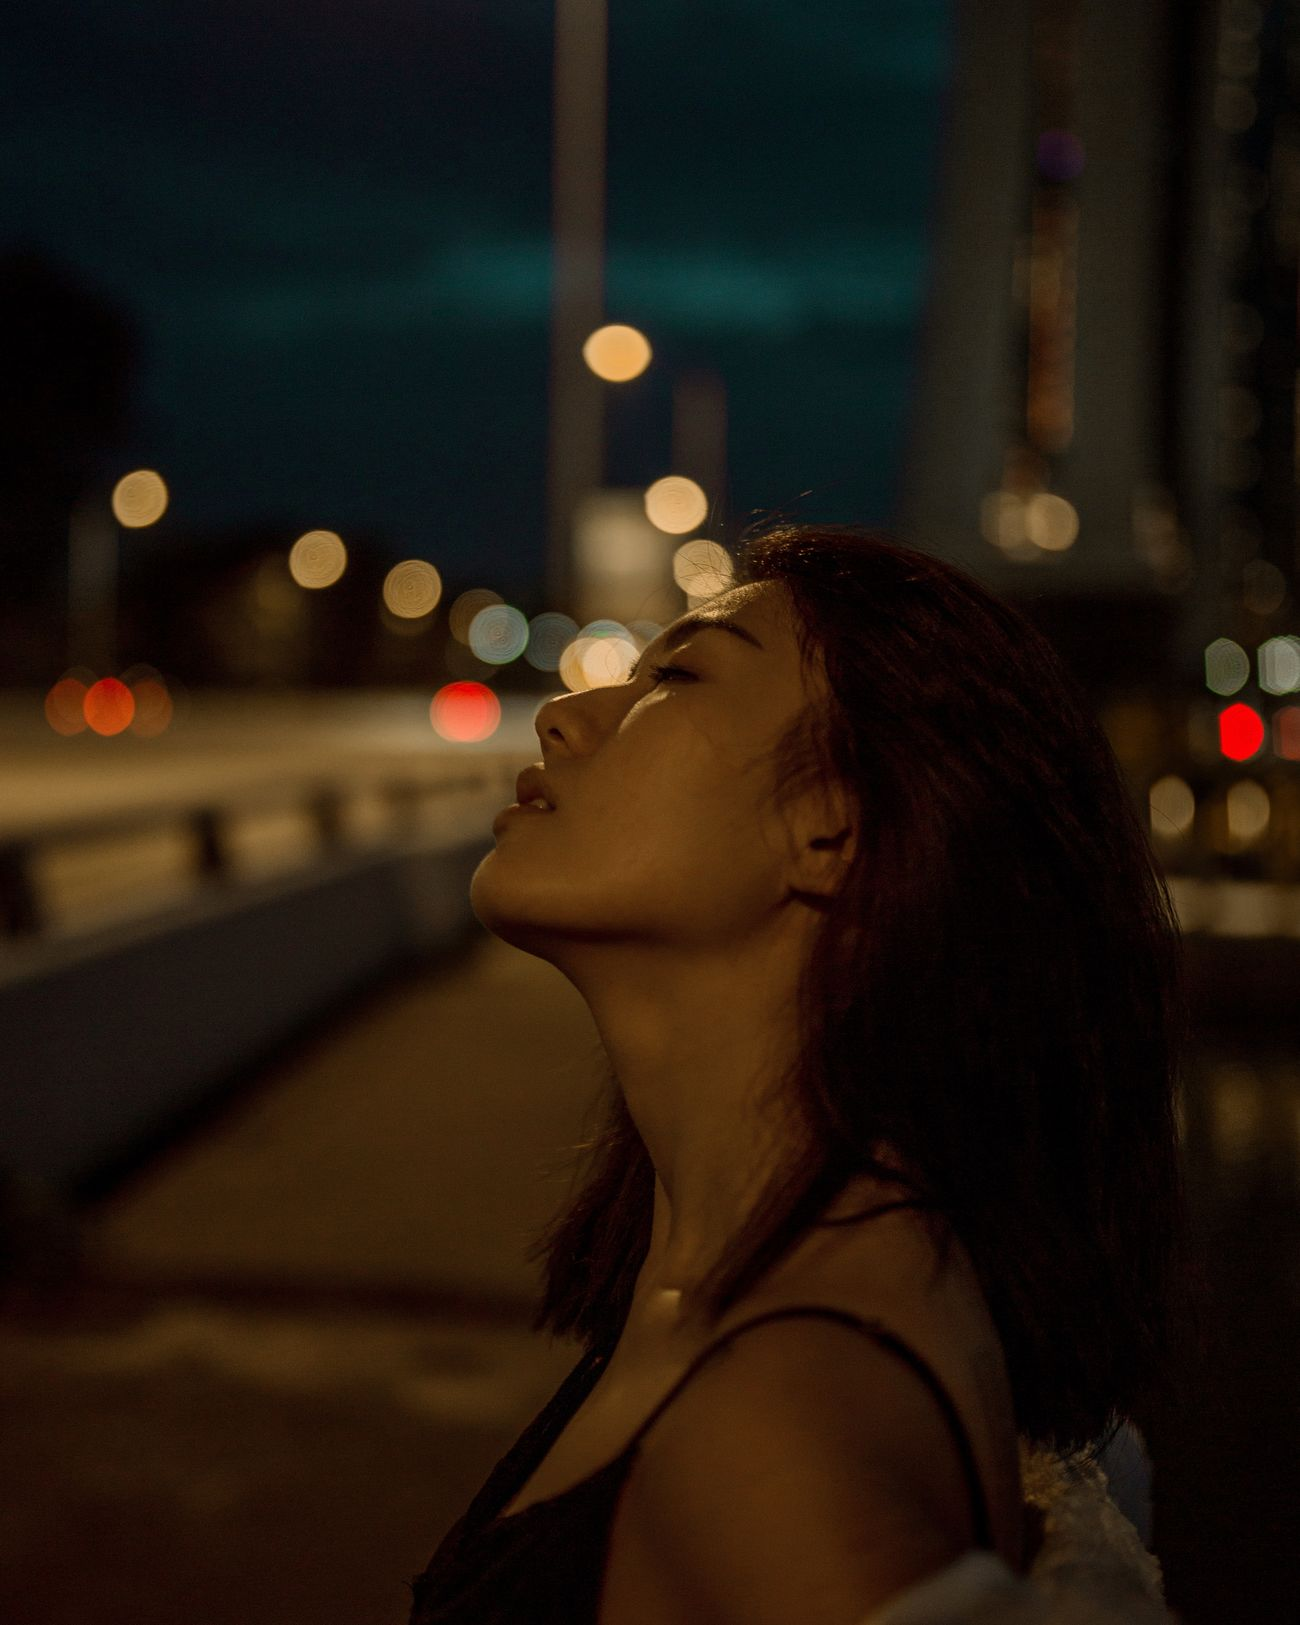 Lights will guide you home City Life City Night Light Collection Portraits Of EyeEmNight Photography Night Lights Portrait Of A Woman Portrait Of A Girl Portrait Photography Women Of EyeEm Beautiful Woman Beautiful People Moody Portrait The City Light Dark Bokeh Bokeh Photography